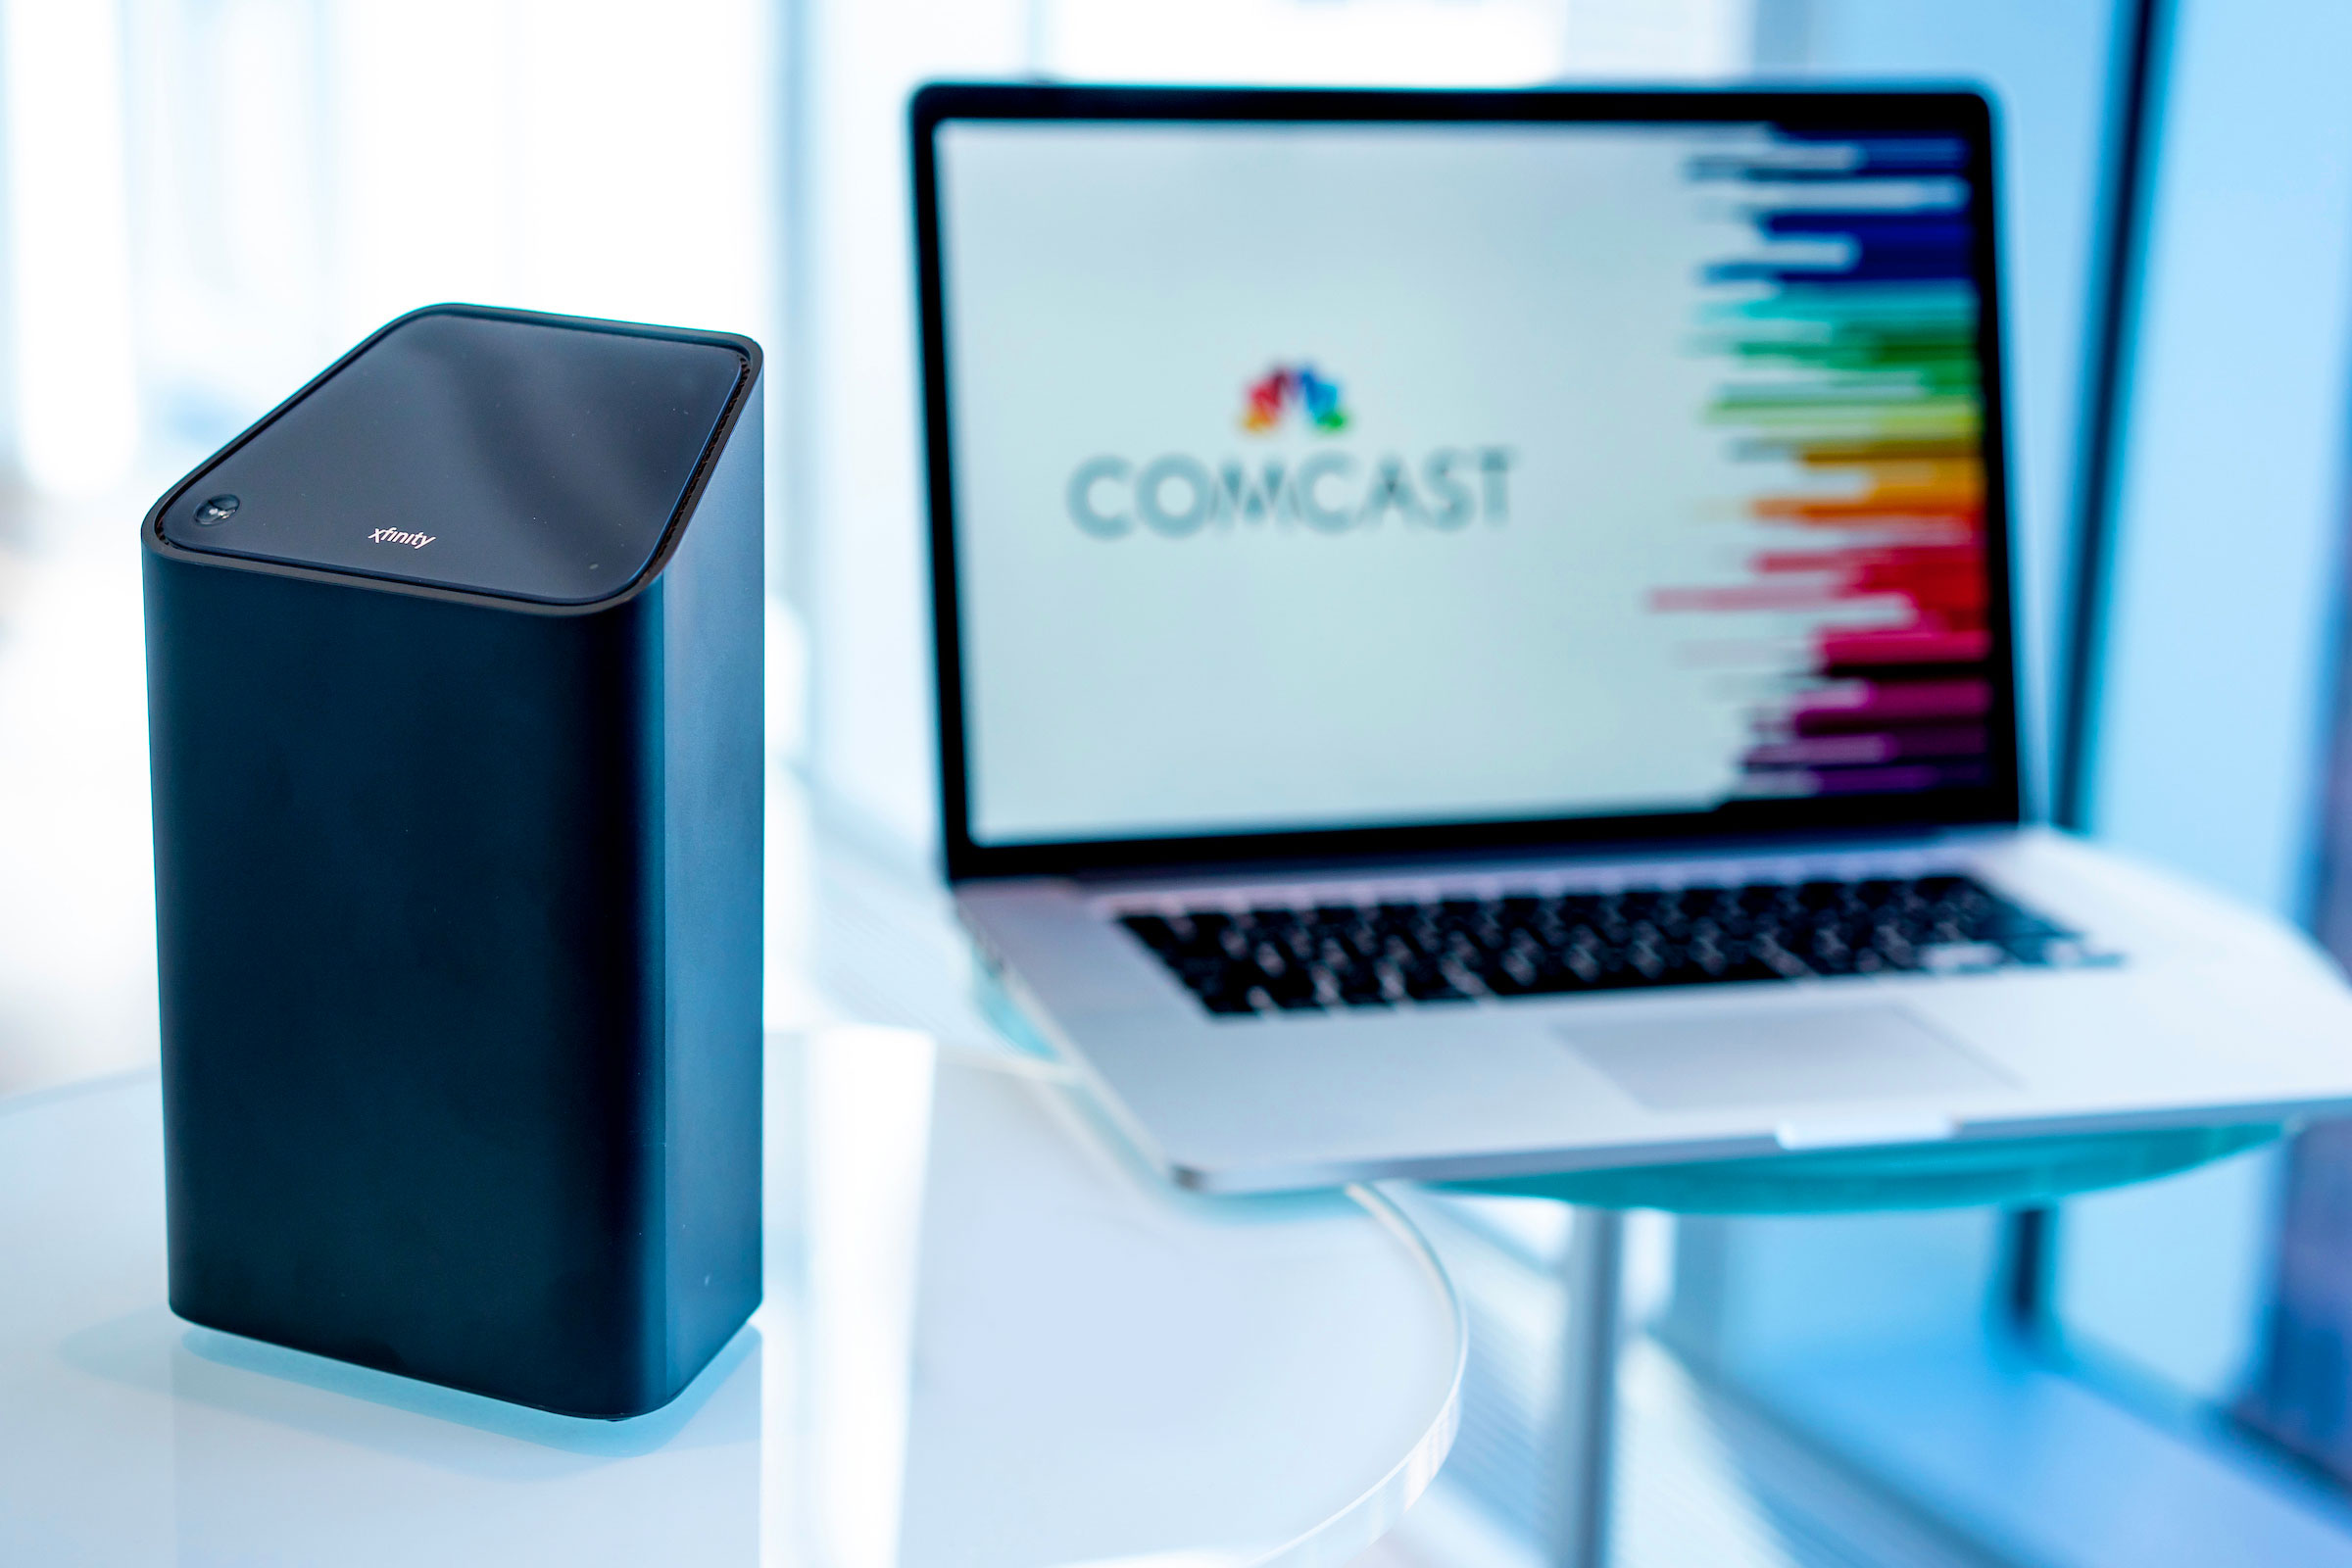 Comcast Announces Launch of High-Speed Internet Services in More East Tennessee Markets